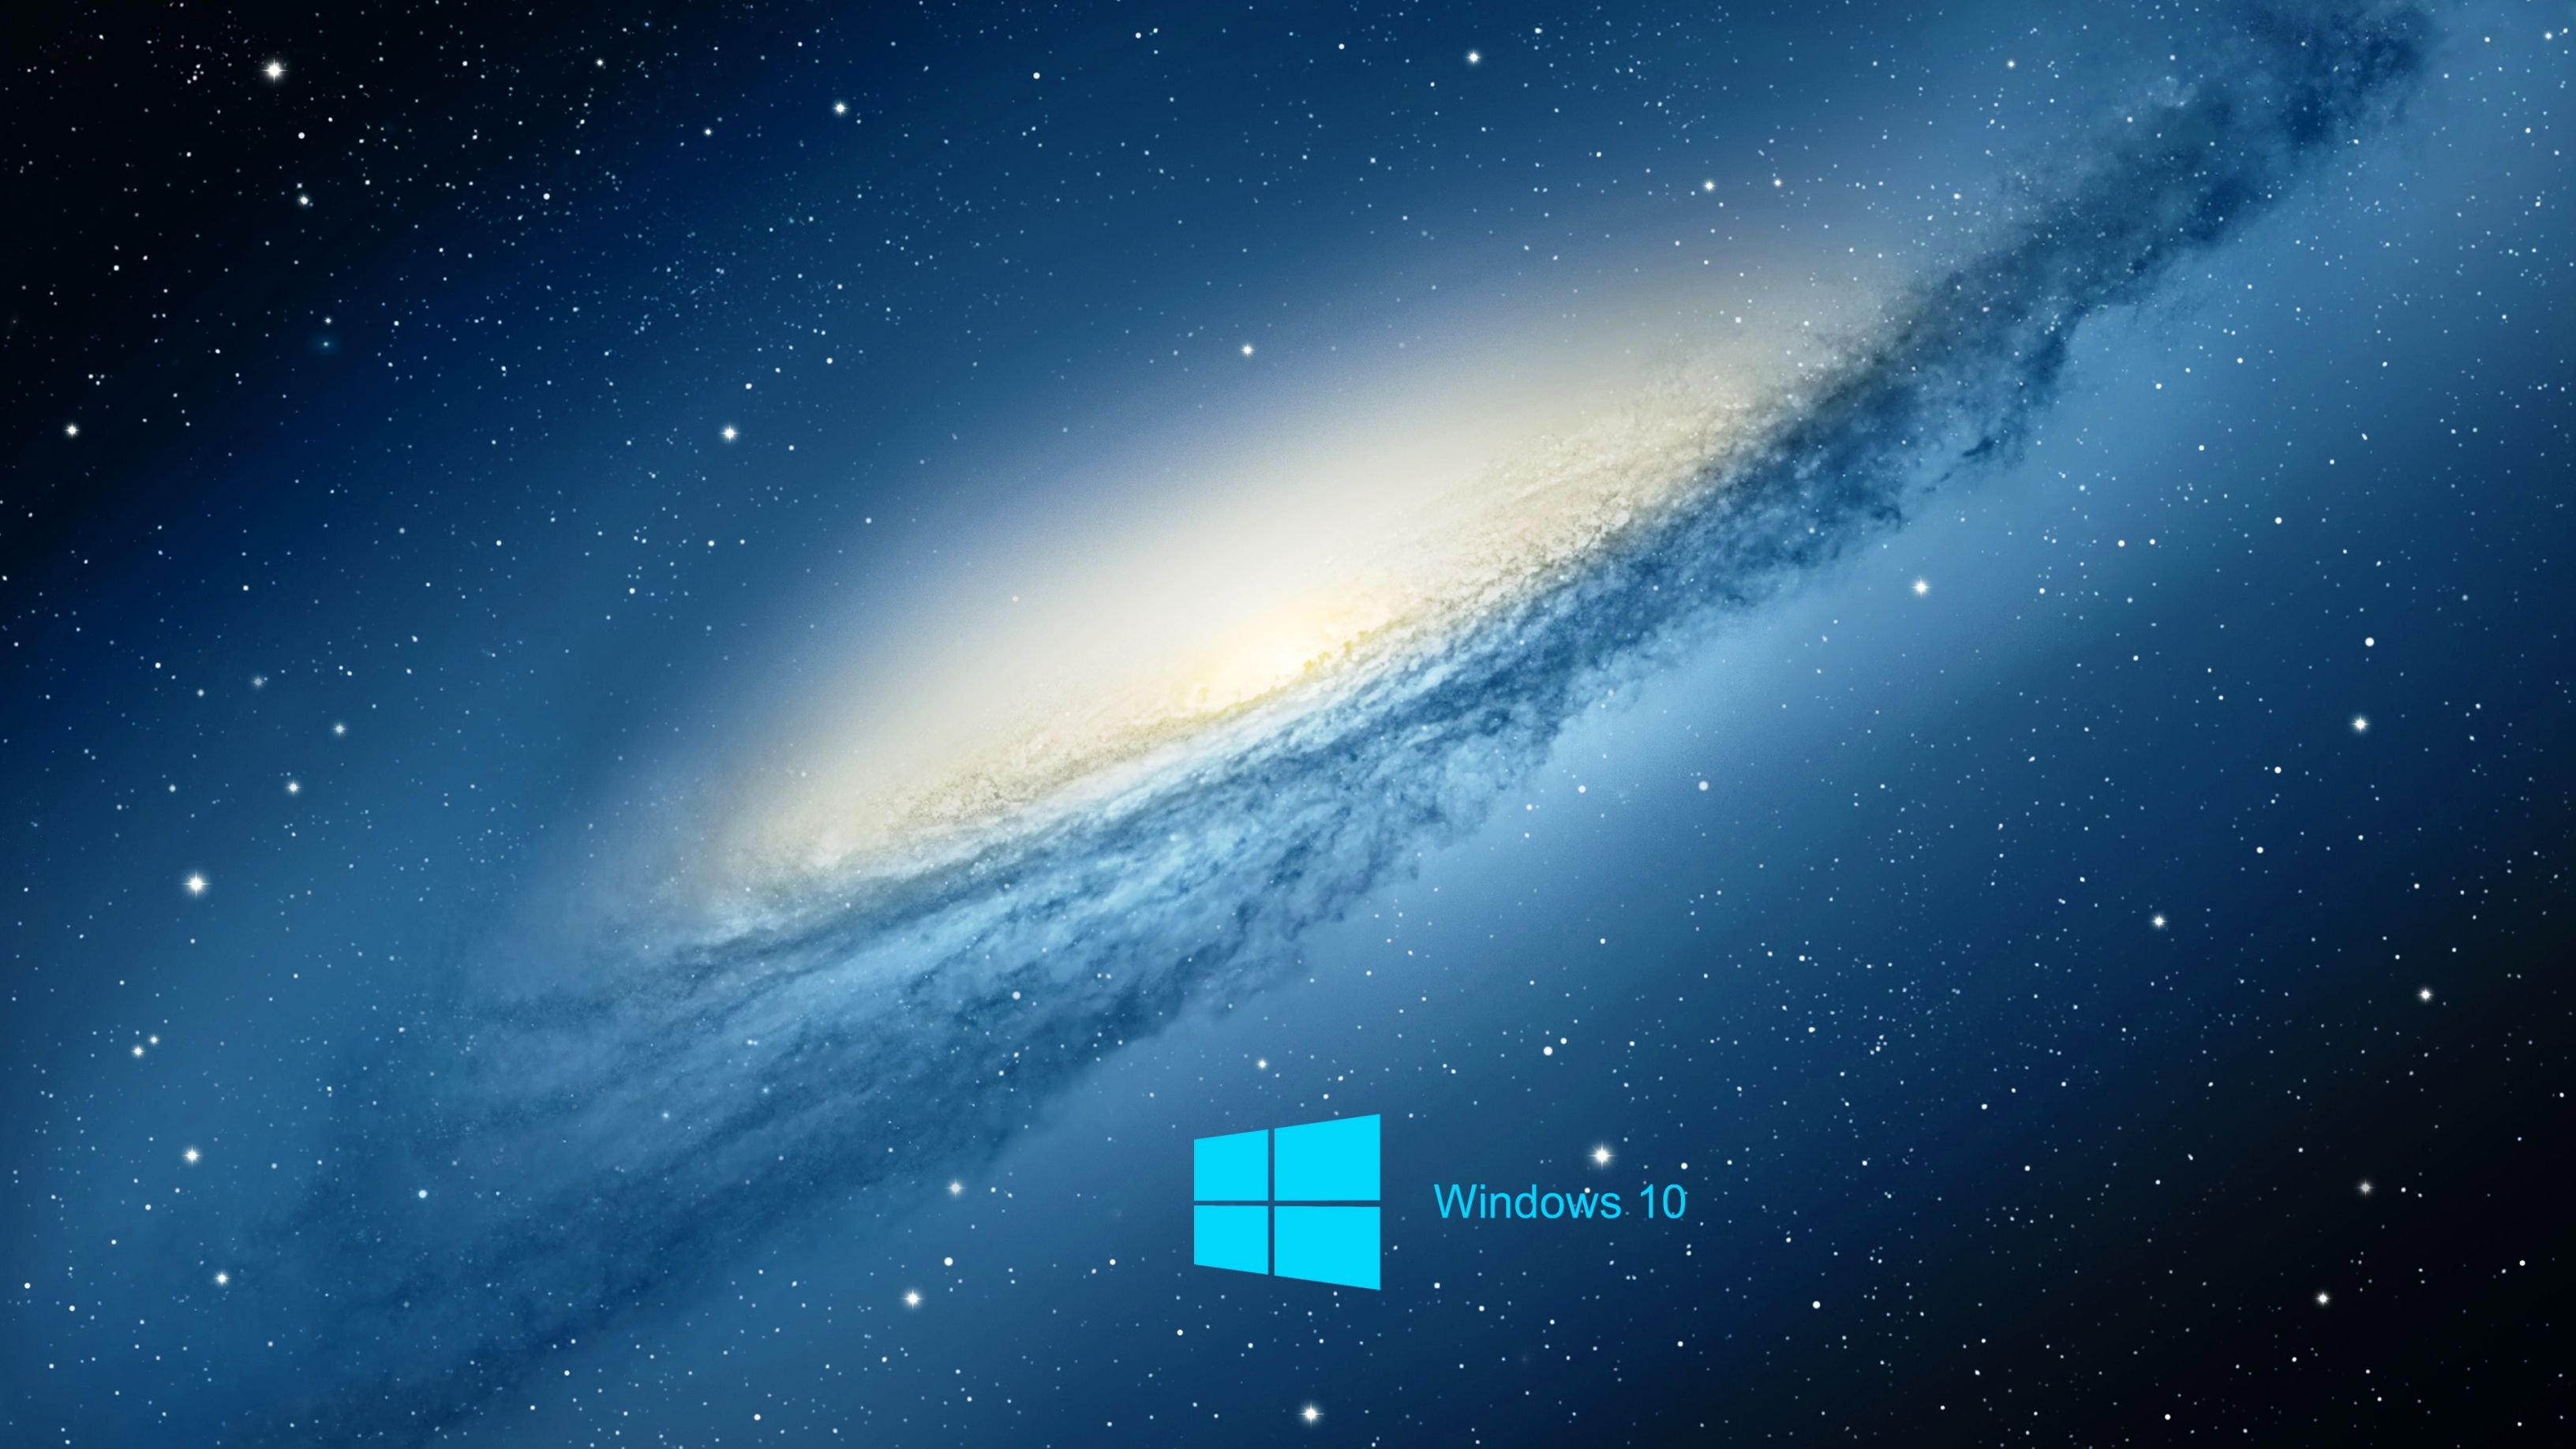 Ultra Hd Windows Wallpapers Top Free Ultra Hd Windows Backgrounds